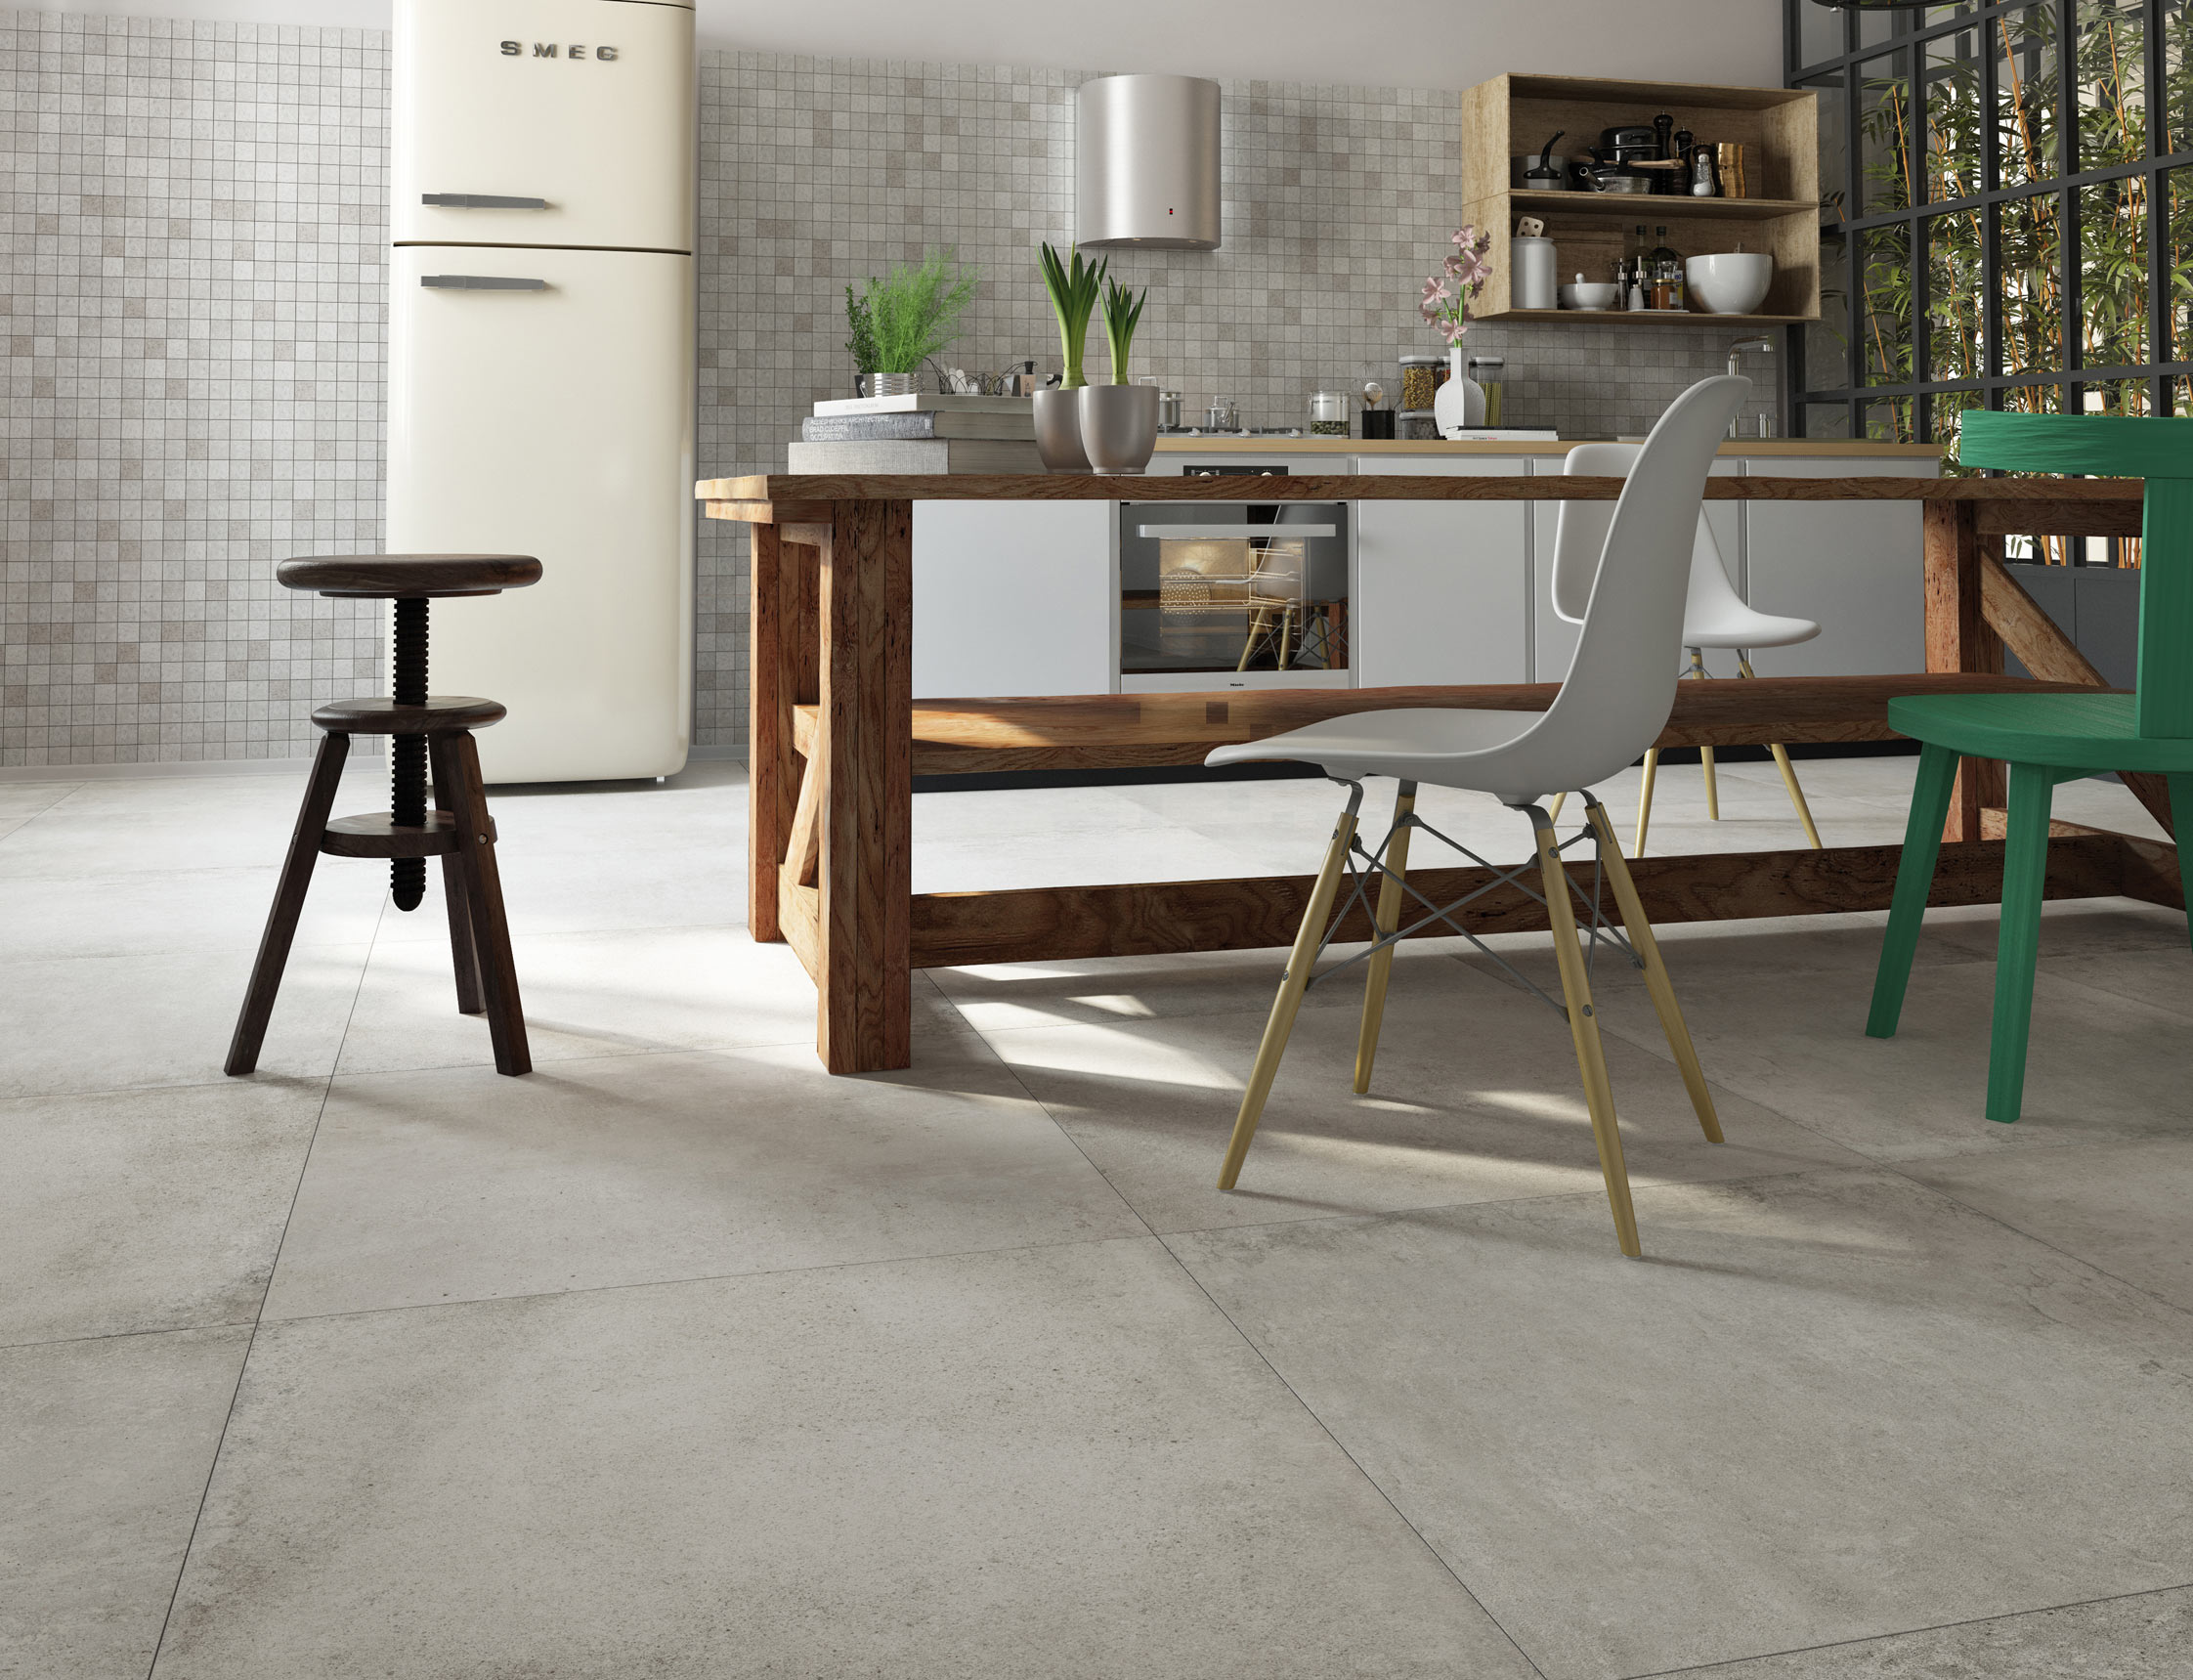 get creative with concrete and stone effect tiles san gimignano concrete kitchen floor san gimignano stone effect floor tiles